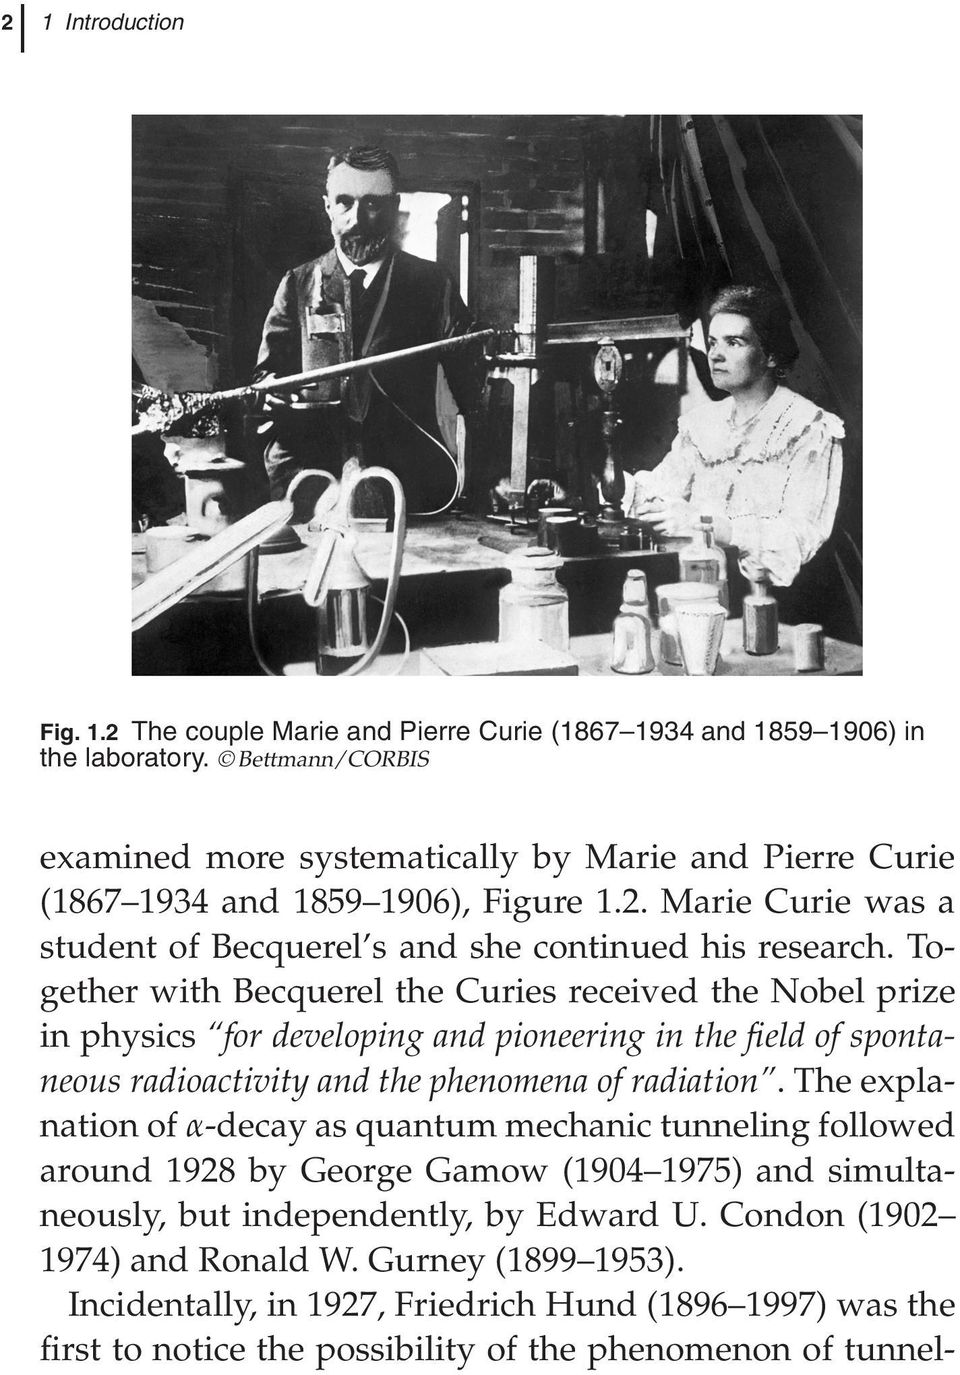 Together with Becquerel the Curies received the Nobel prize in physics for developing and pioneering in the field of spontaneous radioactivity and the phenomena of radiation.